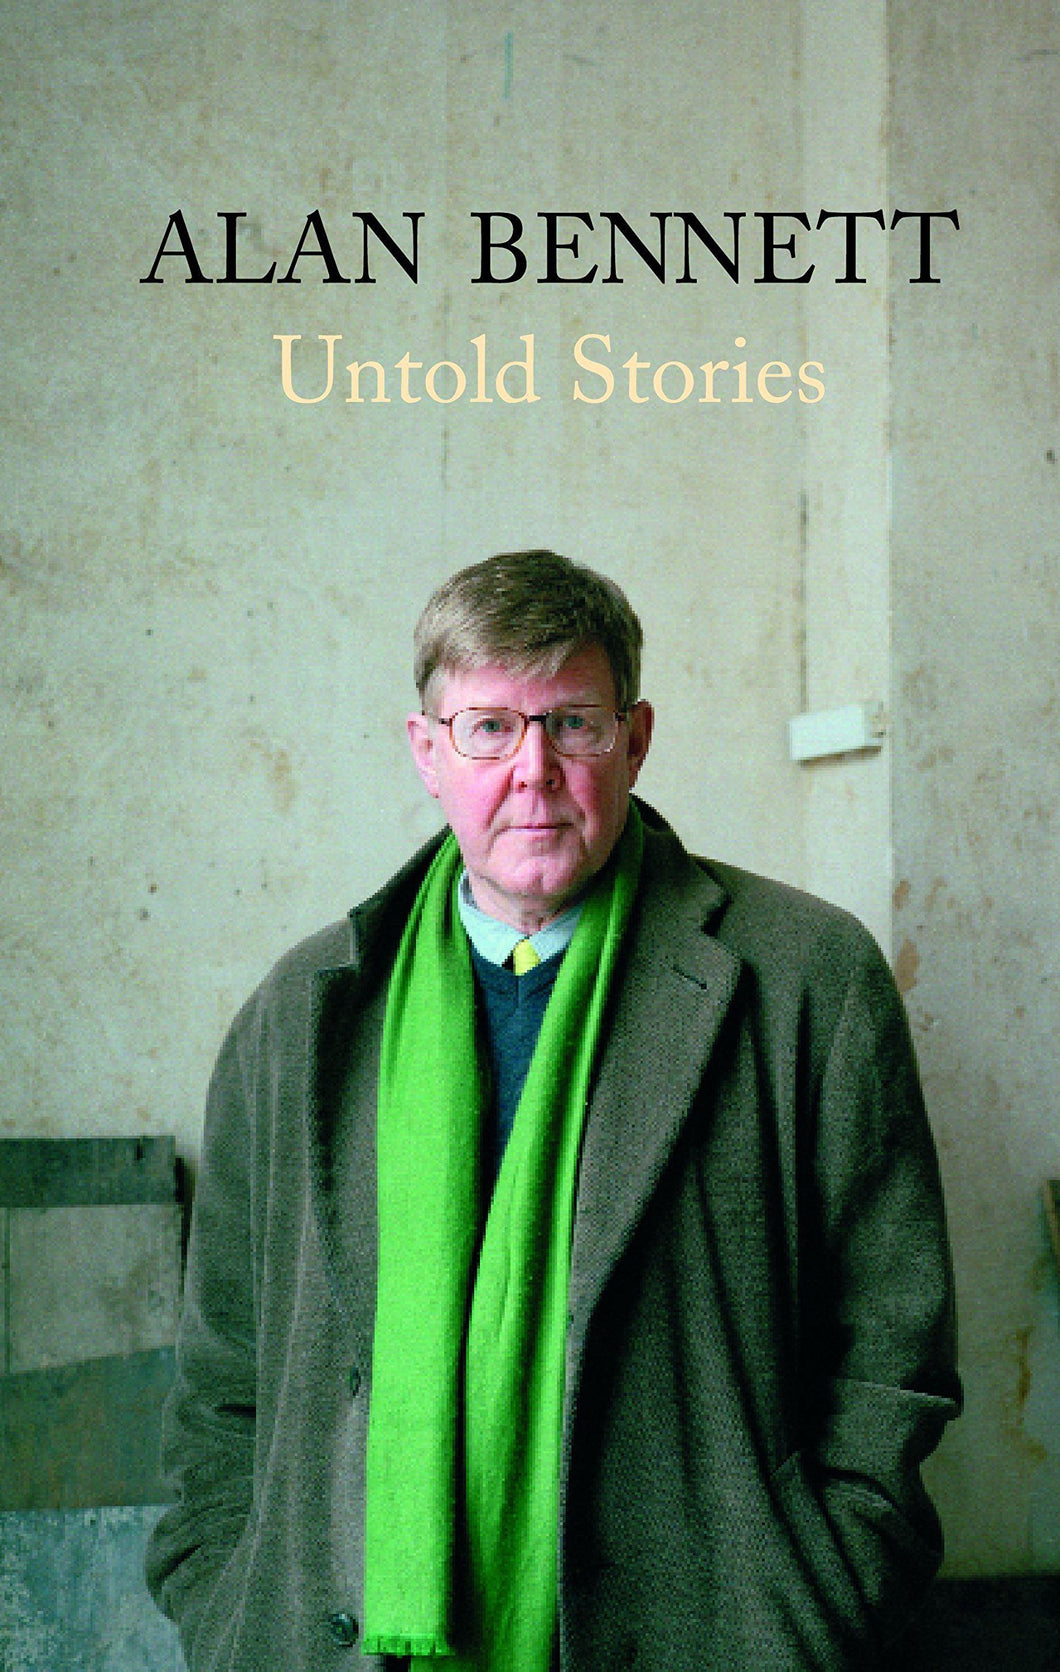 Untold Stories [Hardcover] Bennett, Alan